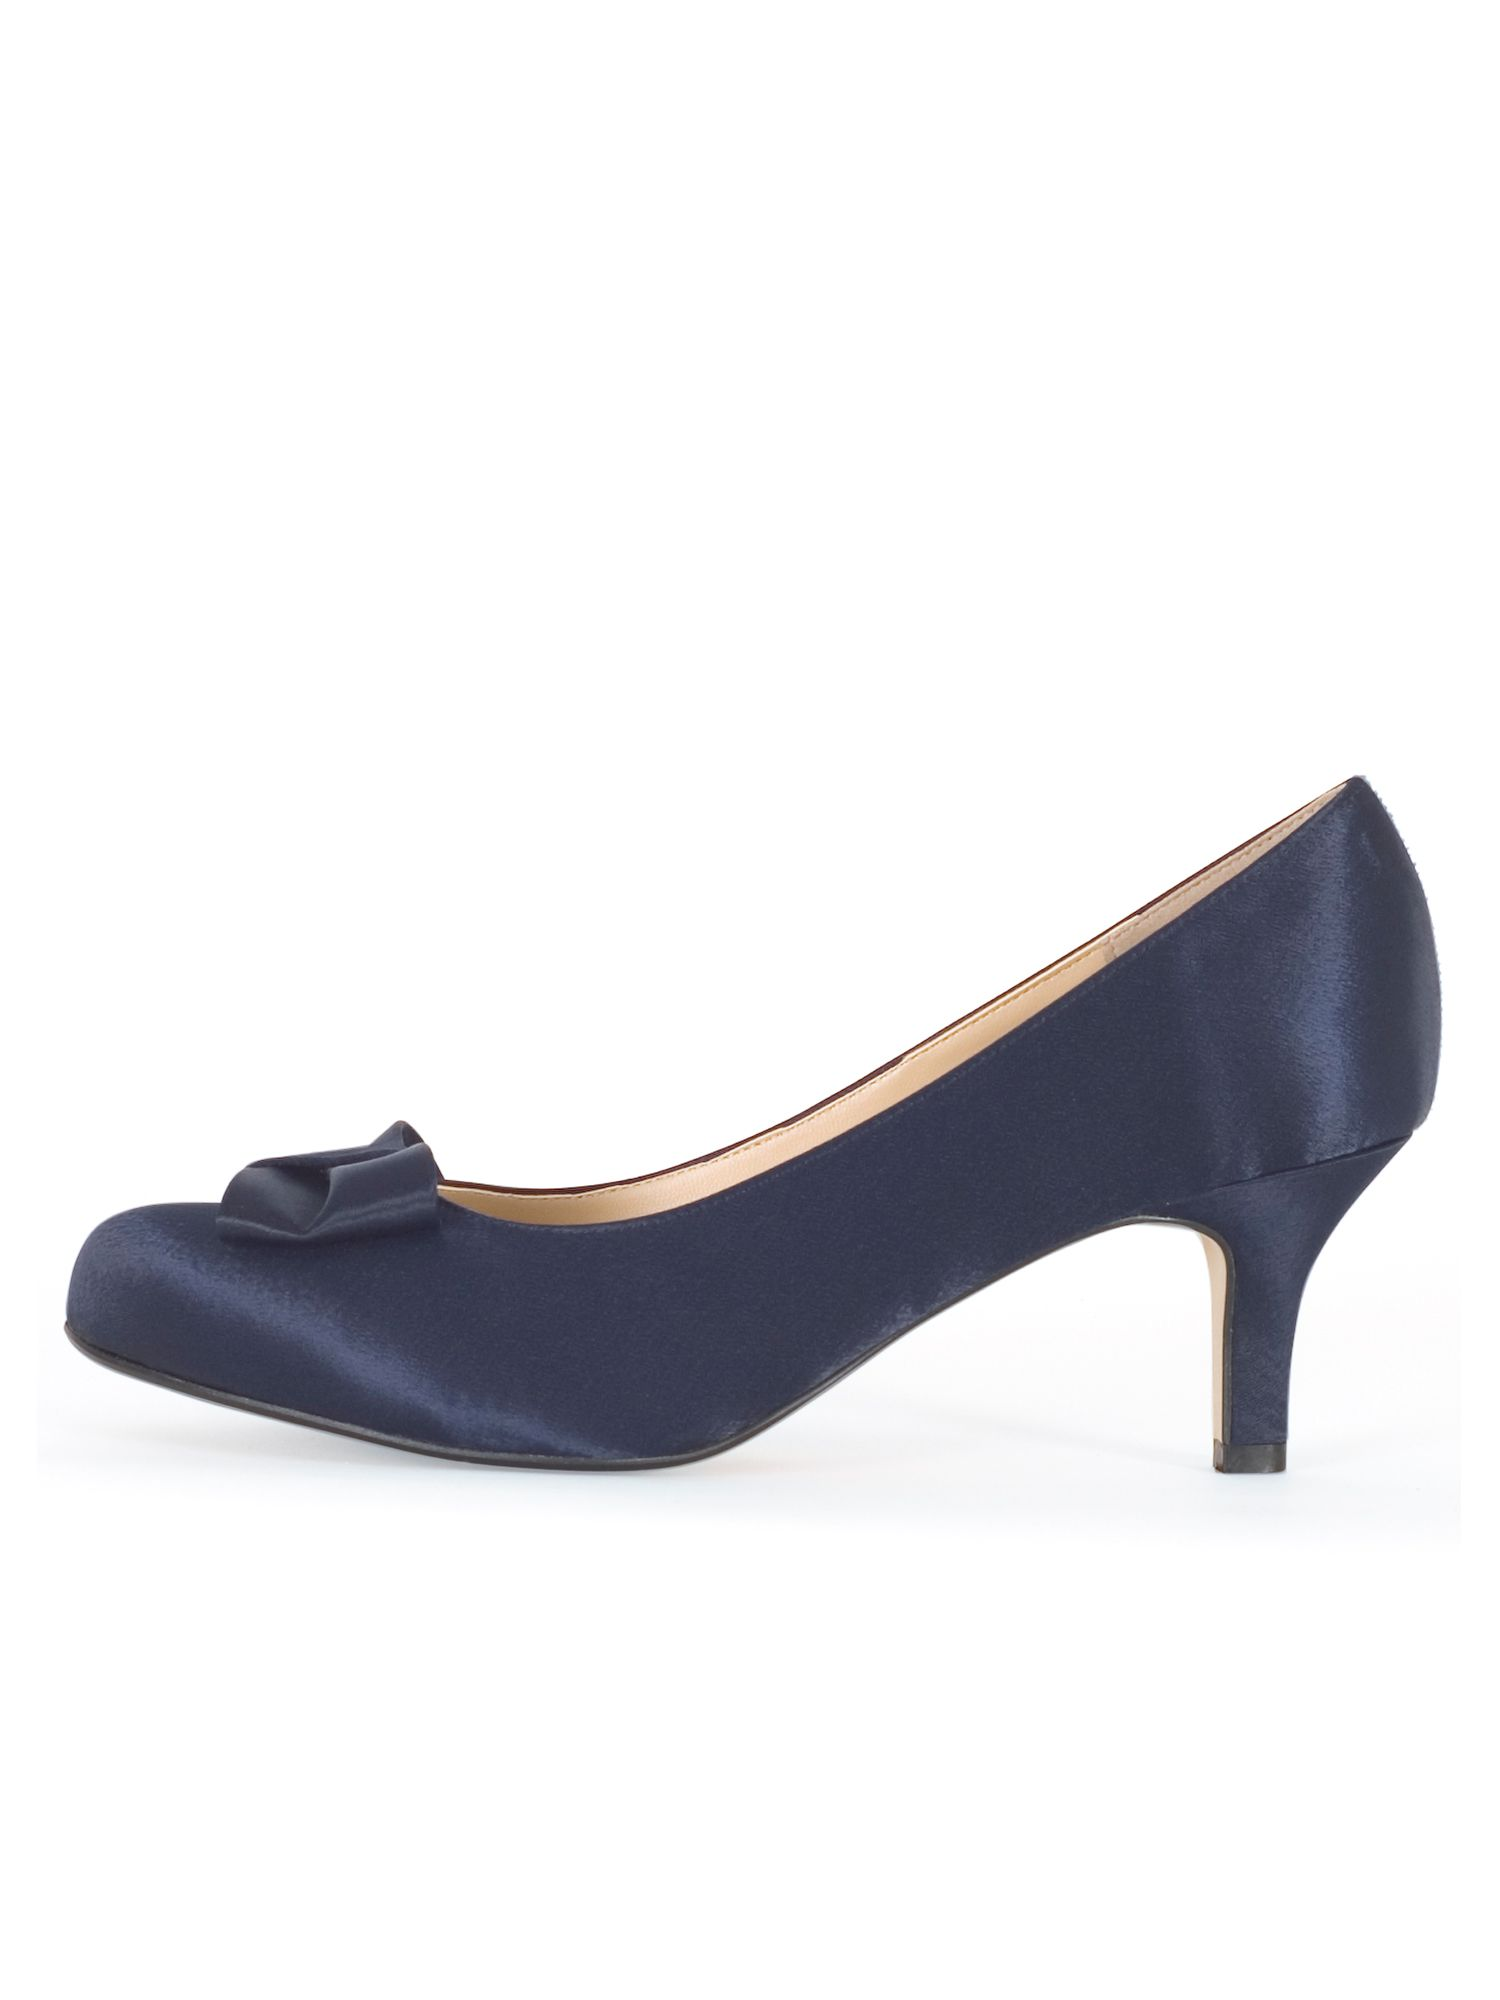 Chesca Satin D Fit Shoe with Bow Detail, Blue